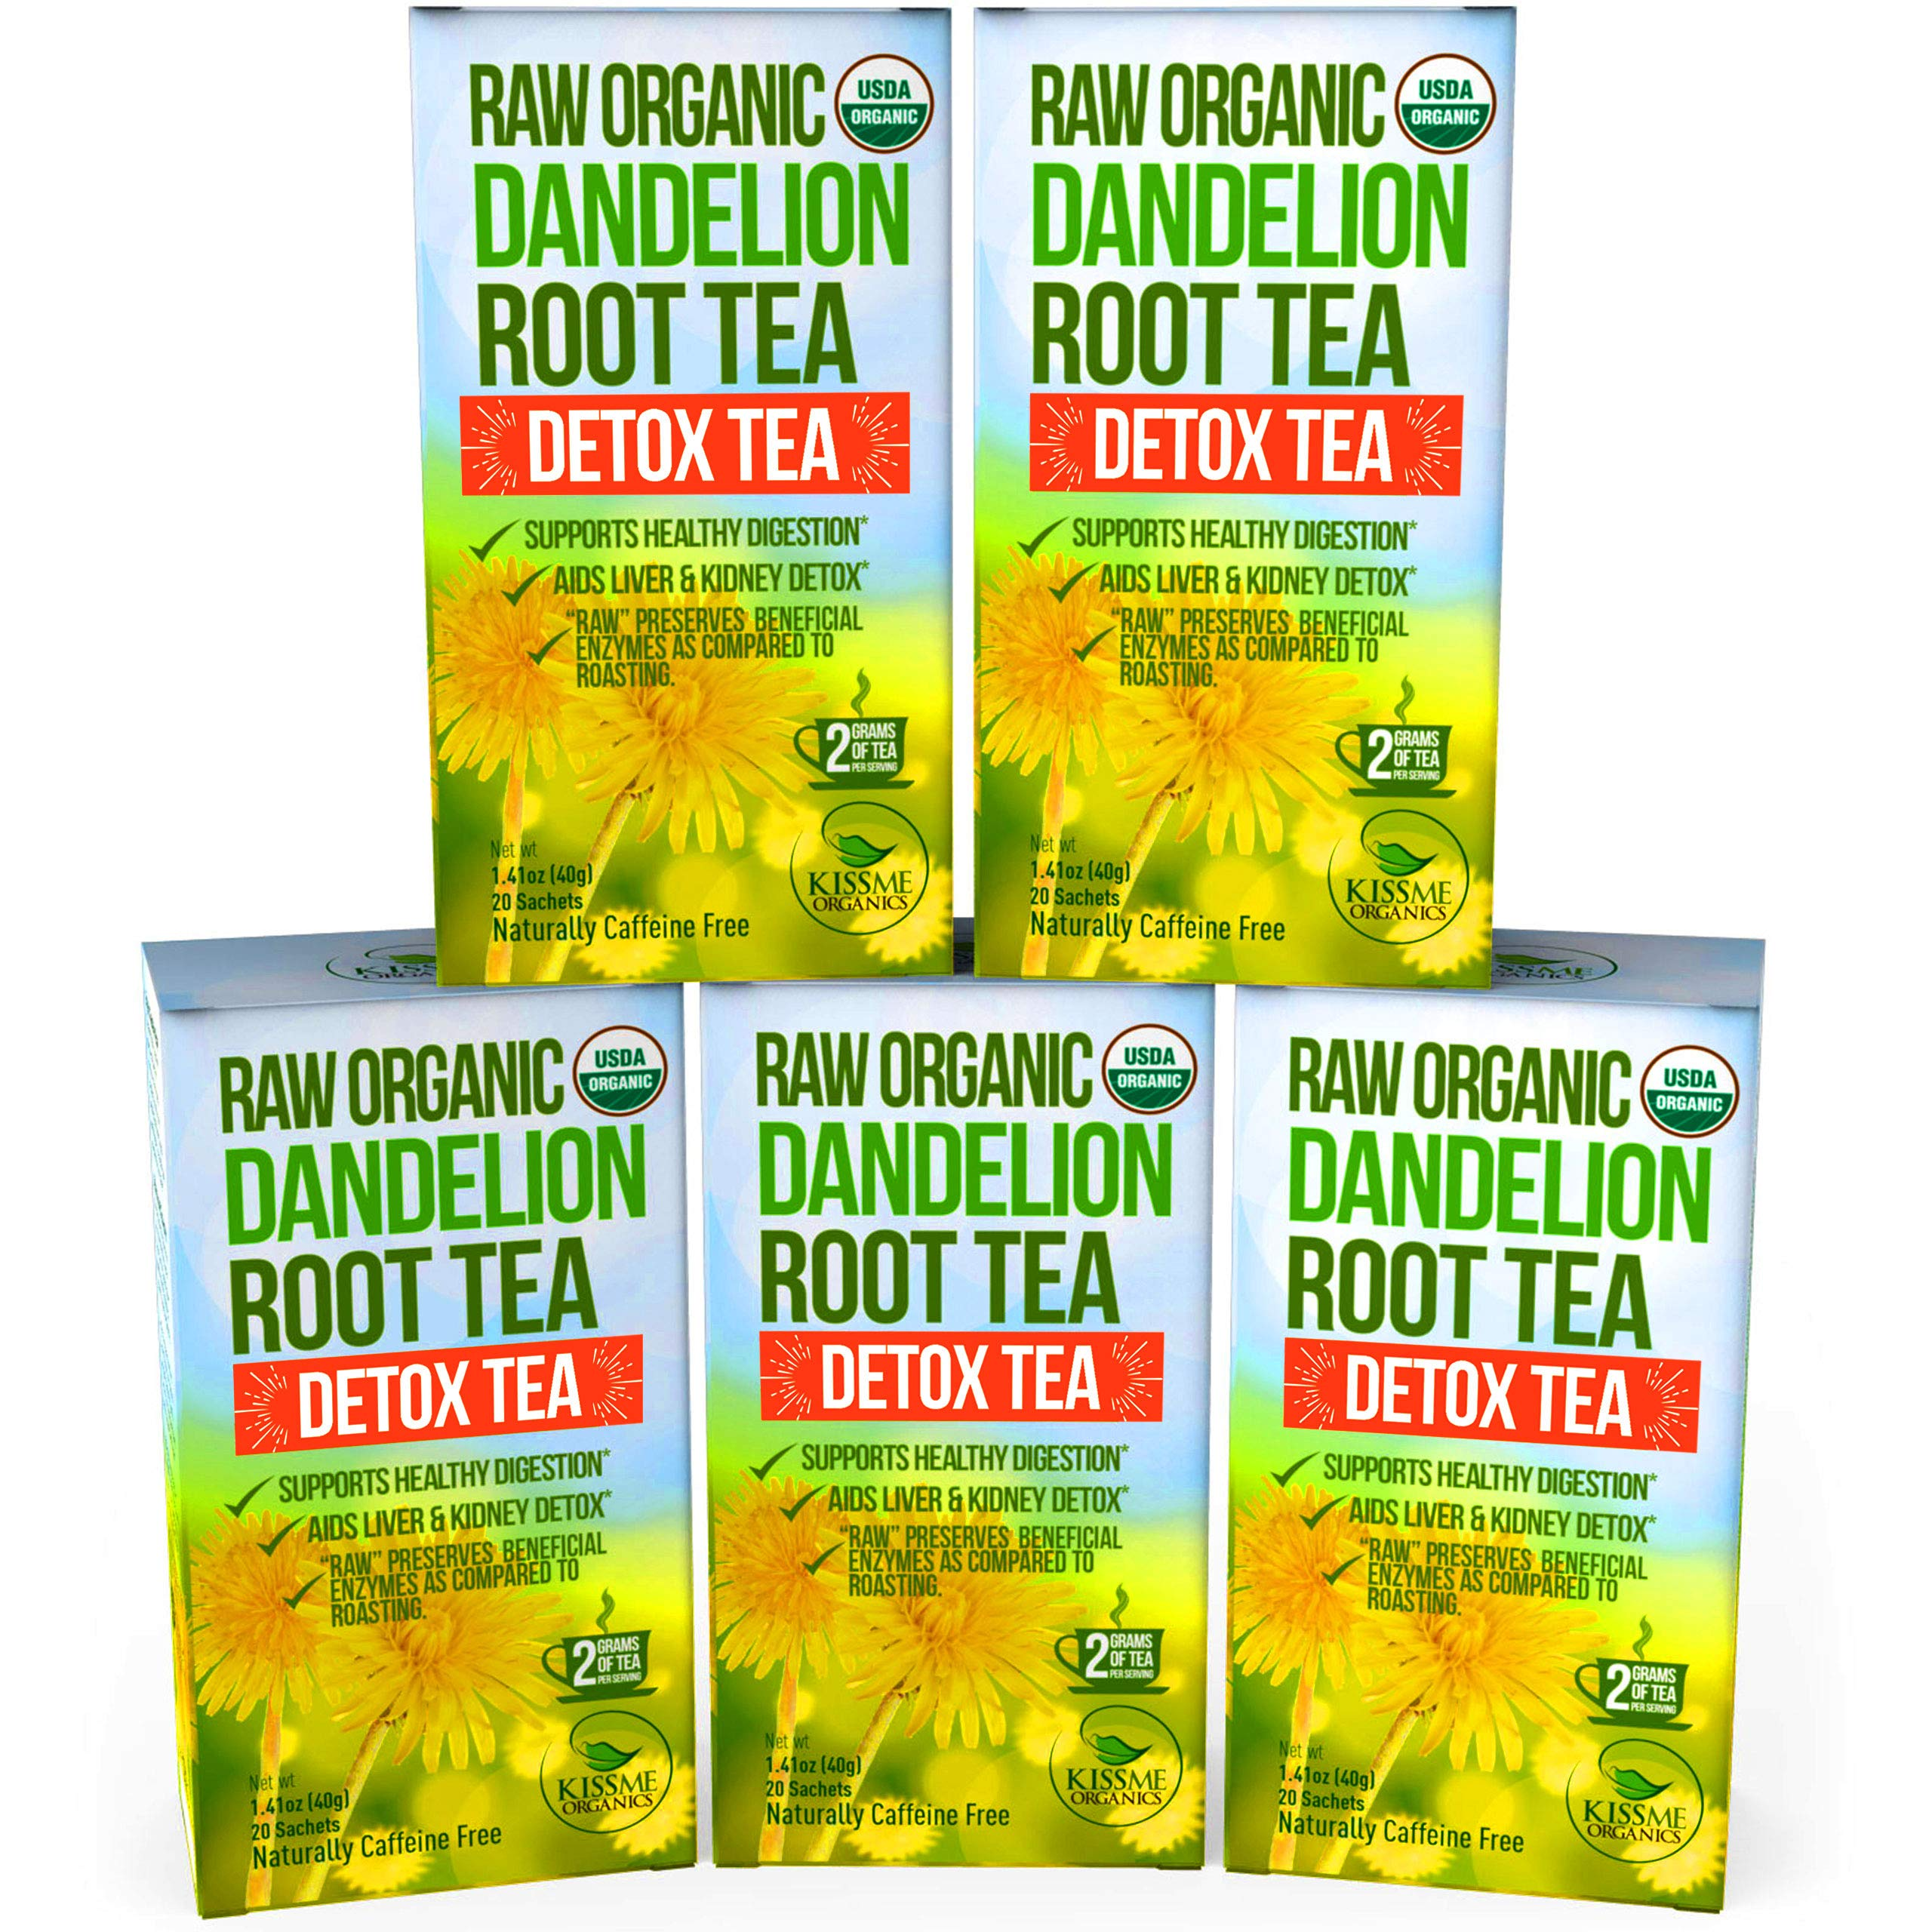 Dandelion Root Tea Detox Tea - Raw Organic Vitamin Rich Digestive - 5 Pack (100 Bags, 2g Each) - Helps Improve Digestion and Immune System - Anti-inflammatory and Antioxidant by Kiss Me Organics